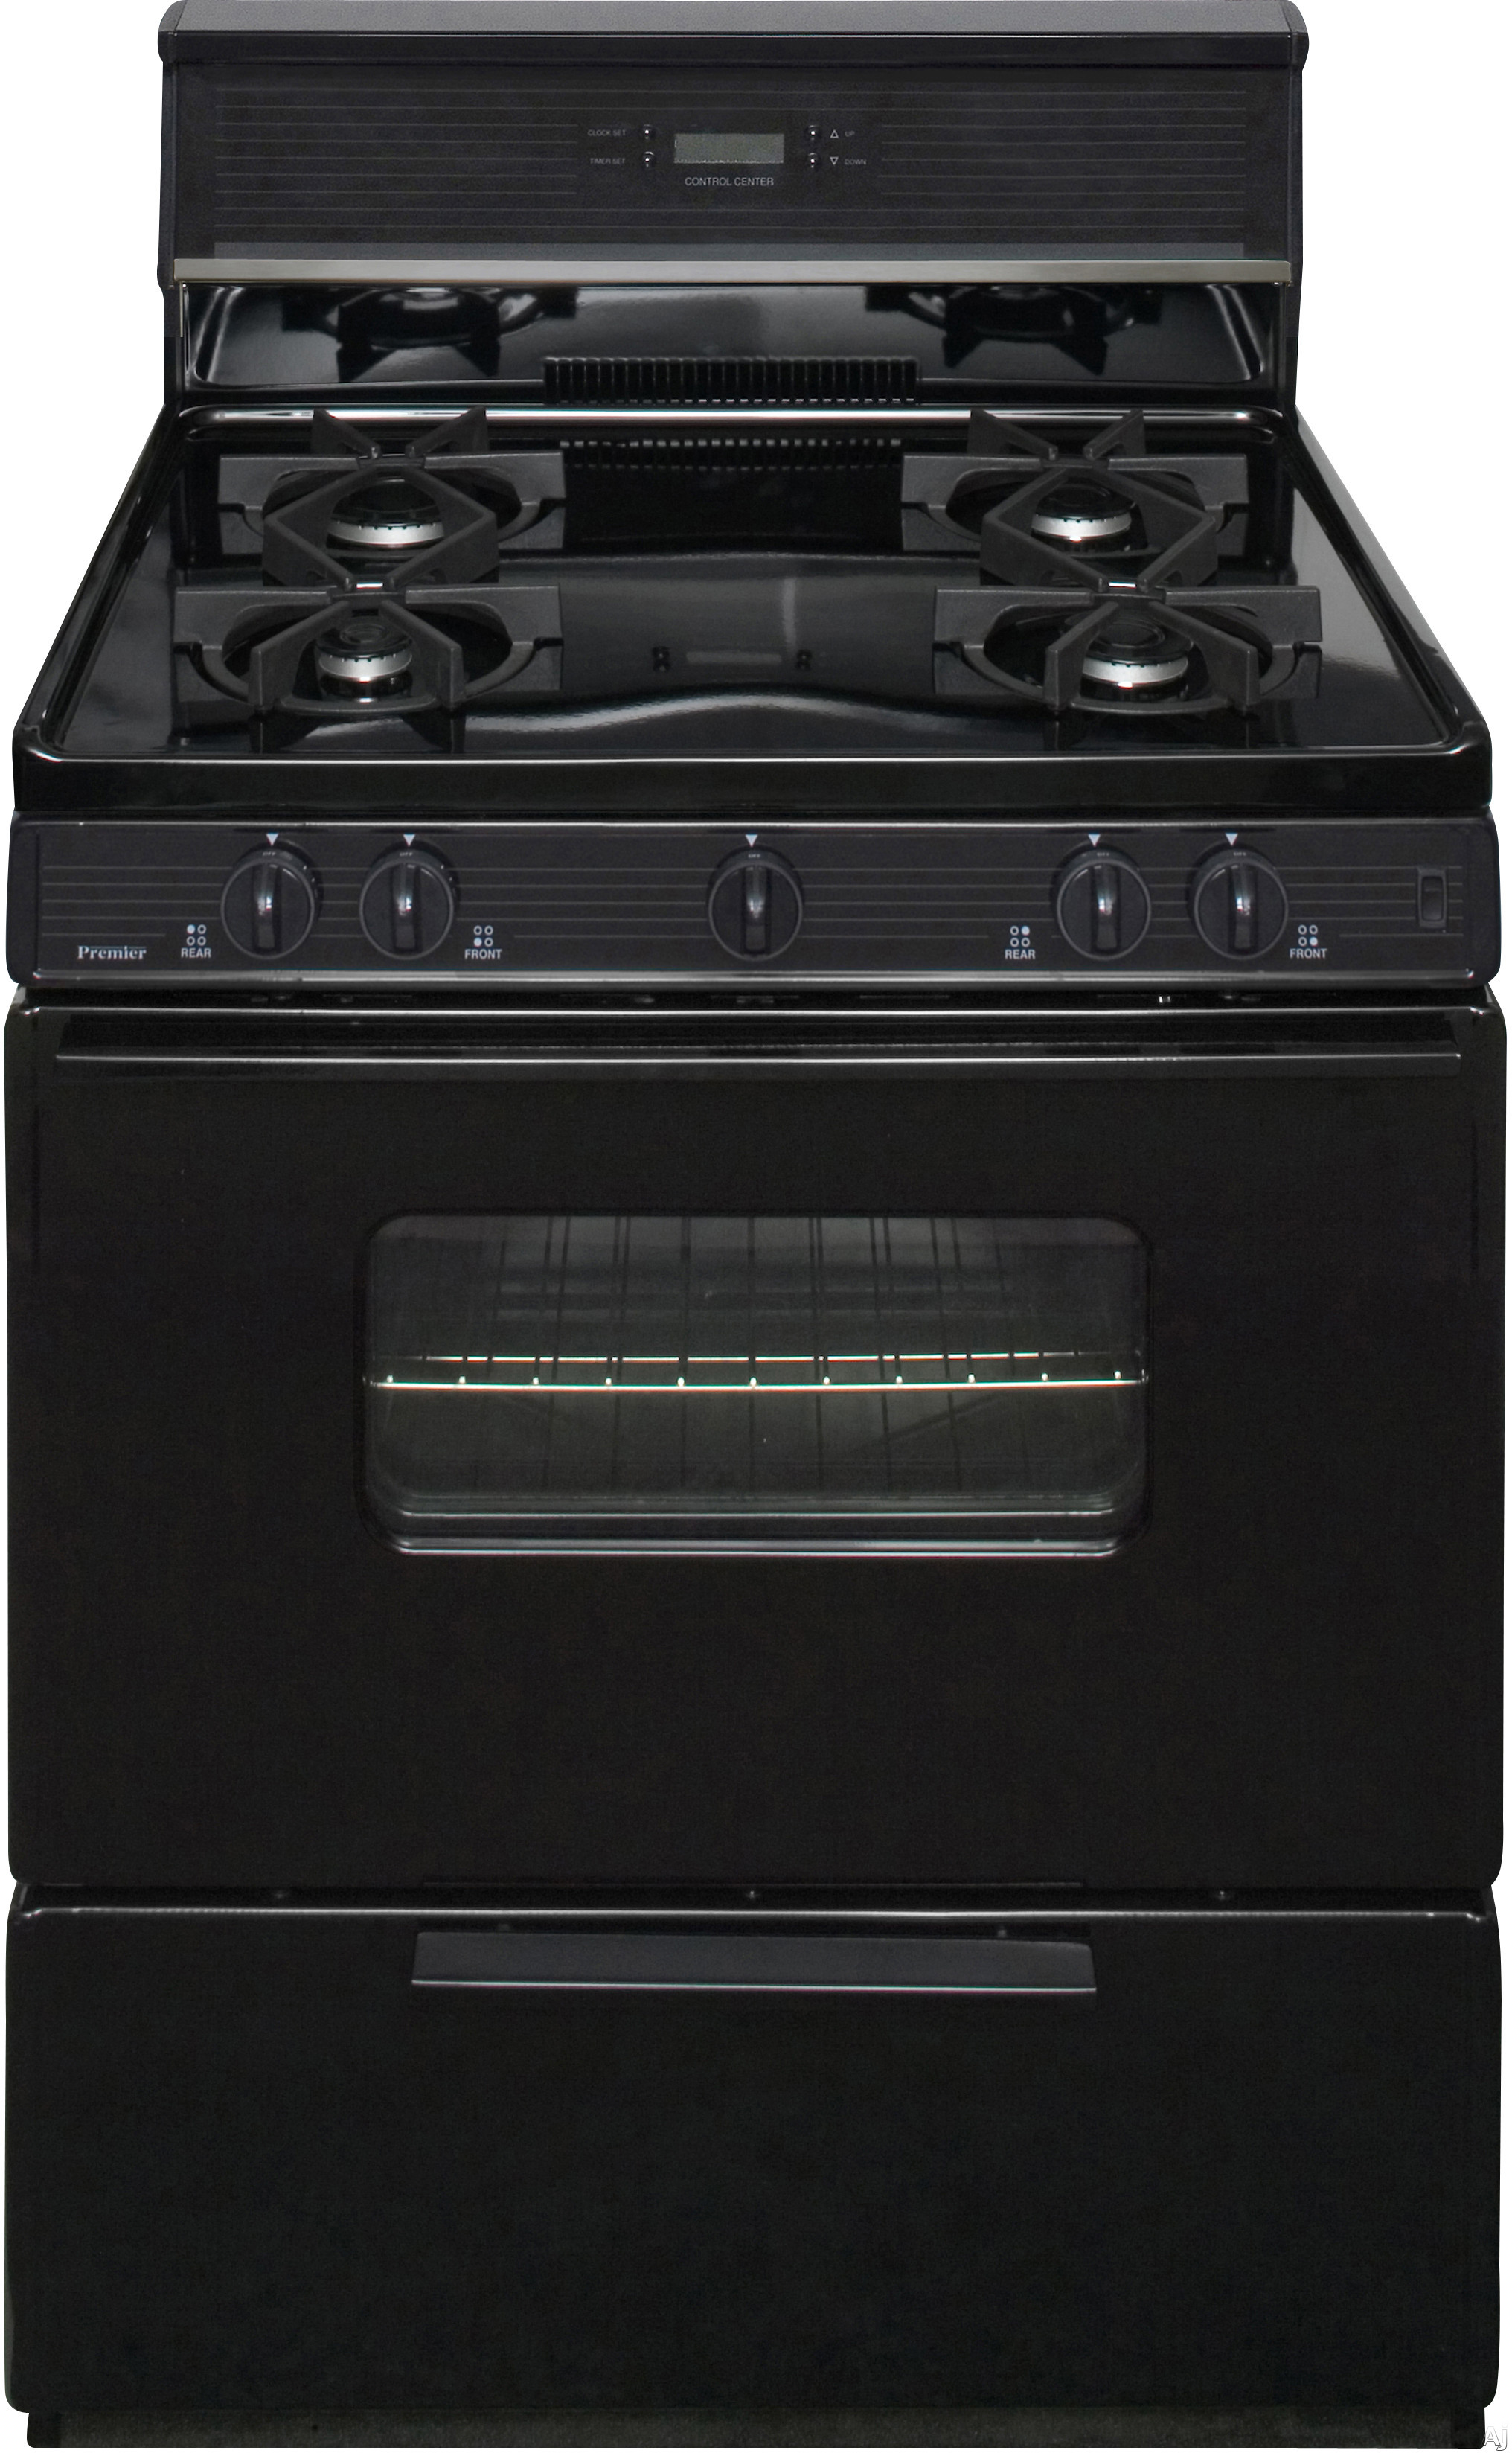 Premier SMK240BP 30 Inch Freestanding Gas Range with 4 Sealed Burners, Electronic Ignition, 17,000 BTU Oven Burner, Electronic Clock/Timer, Interior Oven Light, ADA Compliant and 10 Inch Glass Tempere